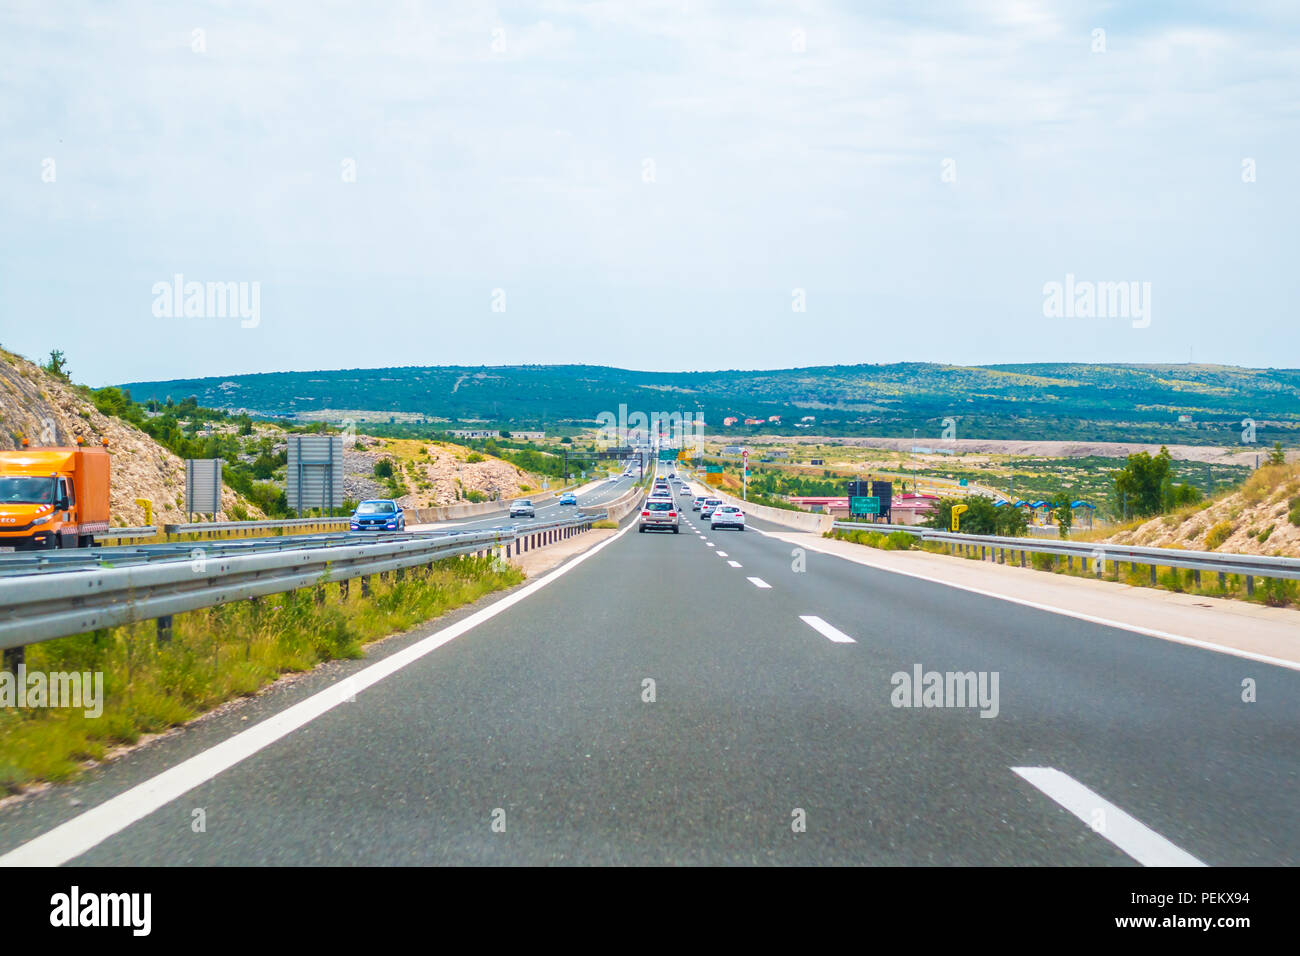 Highway A1 vicinity of Zadar, Croatia, July 1 2018: A1 Highway in Croatia from Zagreb to Split and Adriatic sea is one of the busiest highways during  Stock Photo